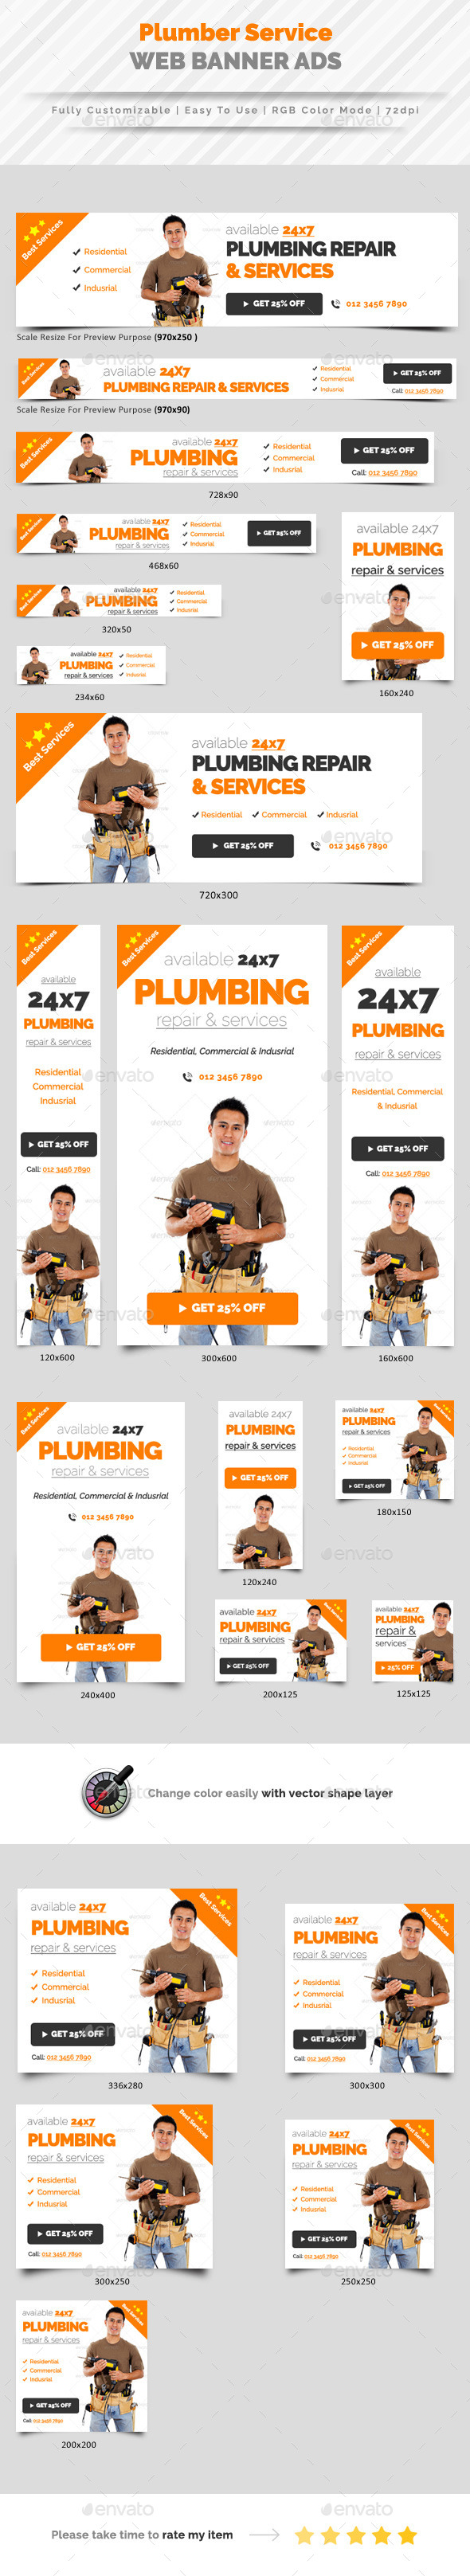 Plumbing Service Web Banner Ads - Banners & Ads Web Elements